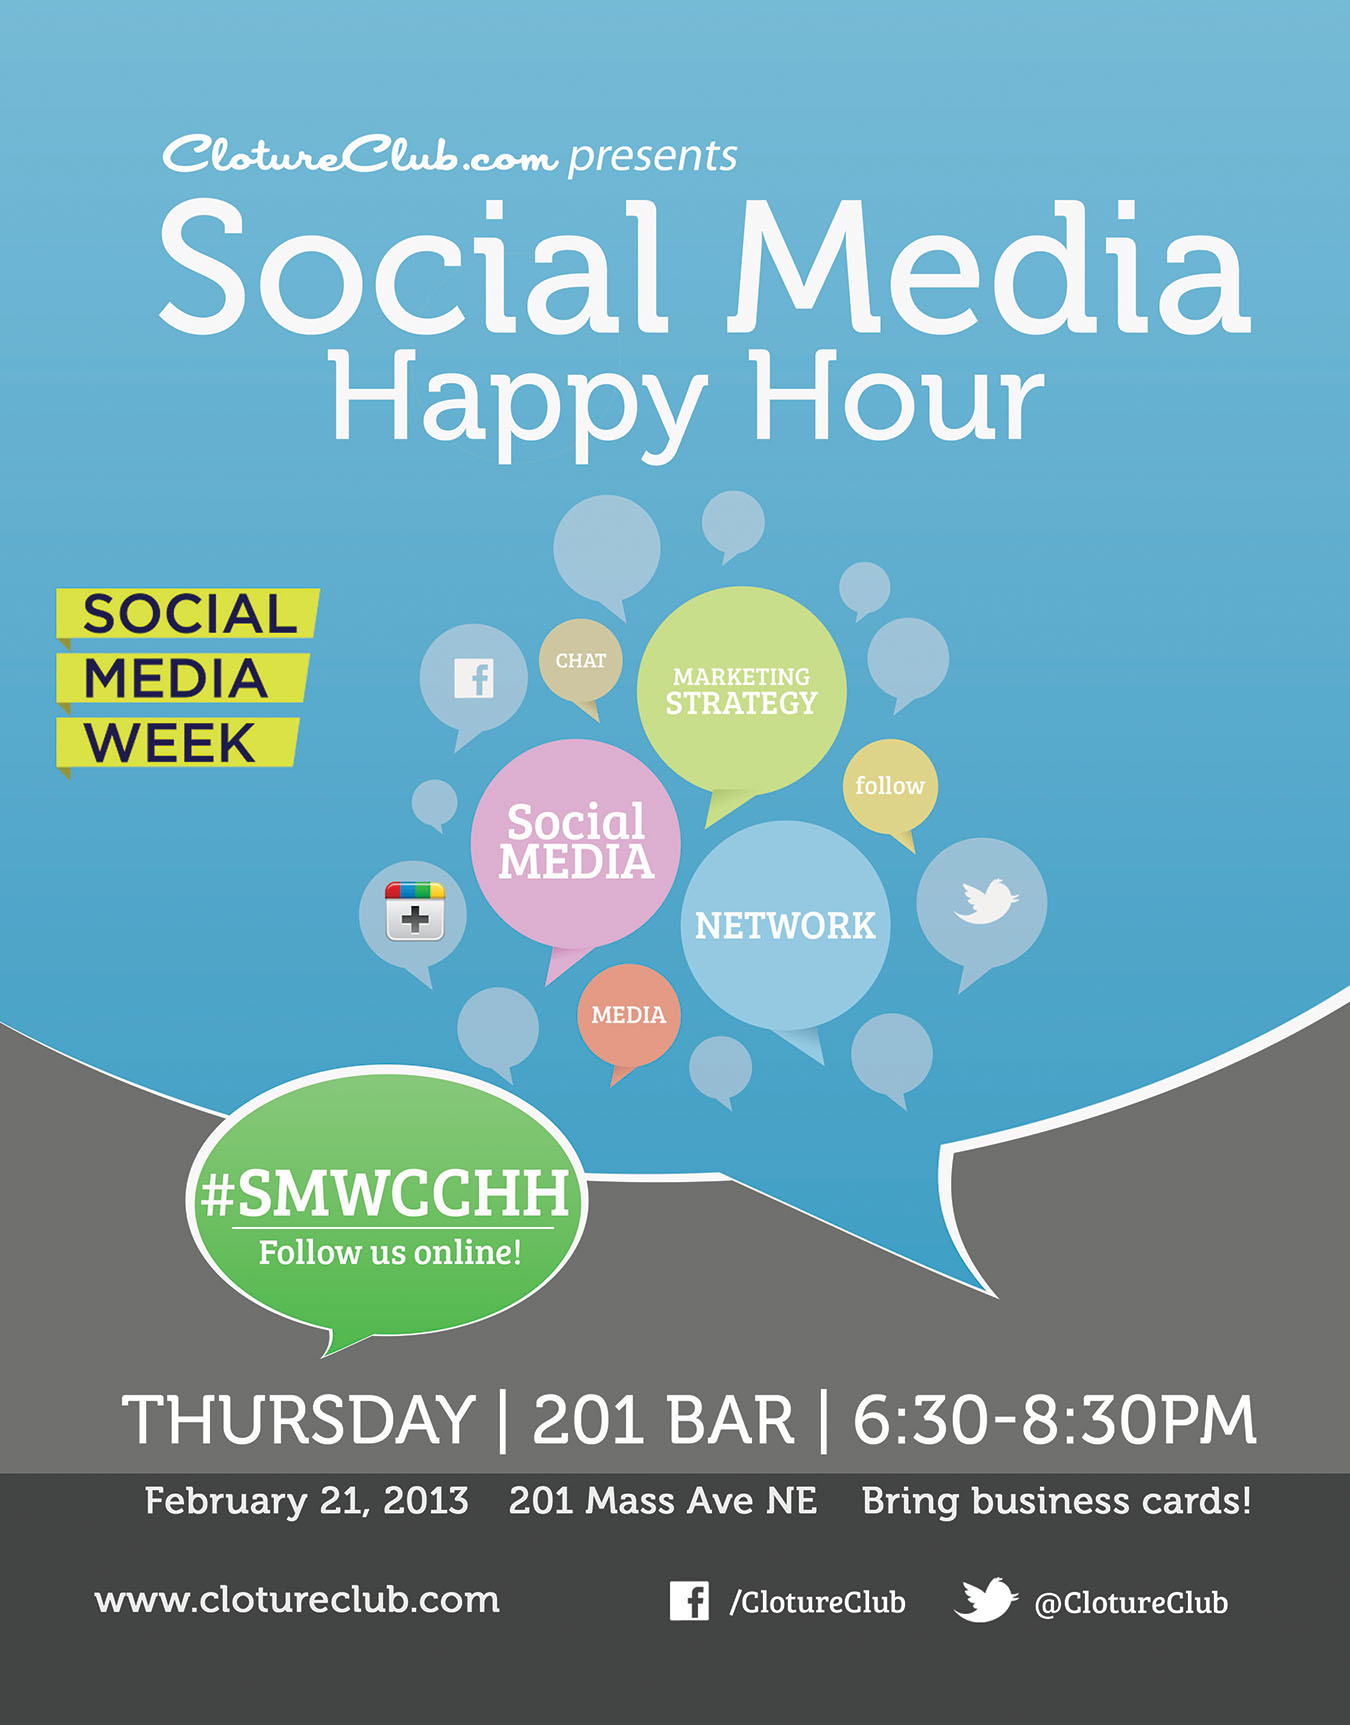 Cloture Club's Social Media Week Happy Hour